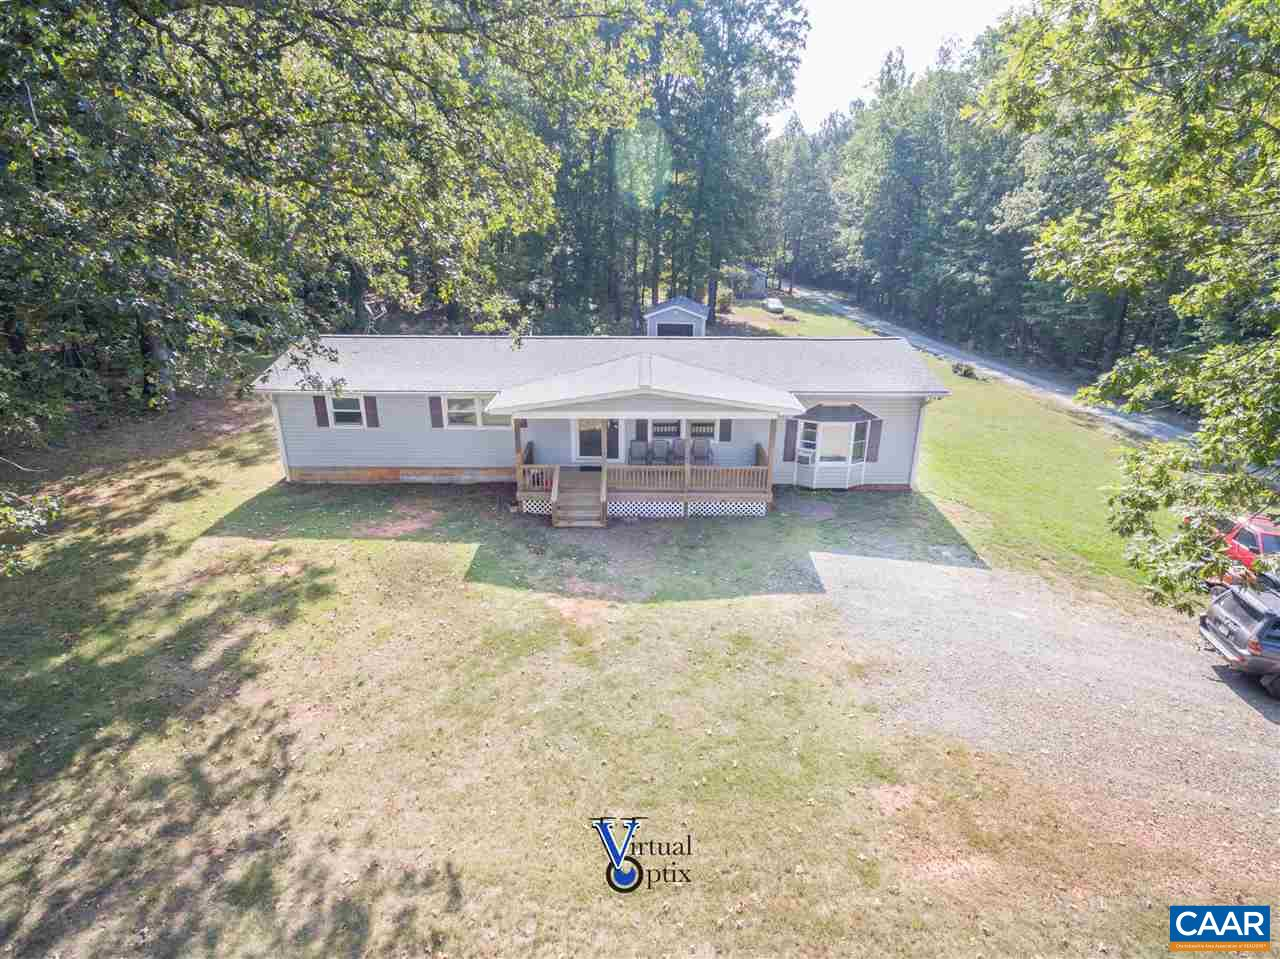 4218 CEDAR LANE RD, KENTS STORE, VA 23084